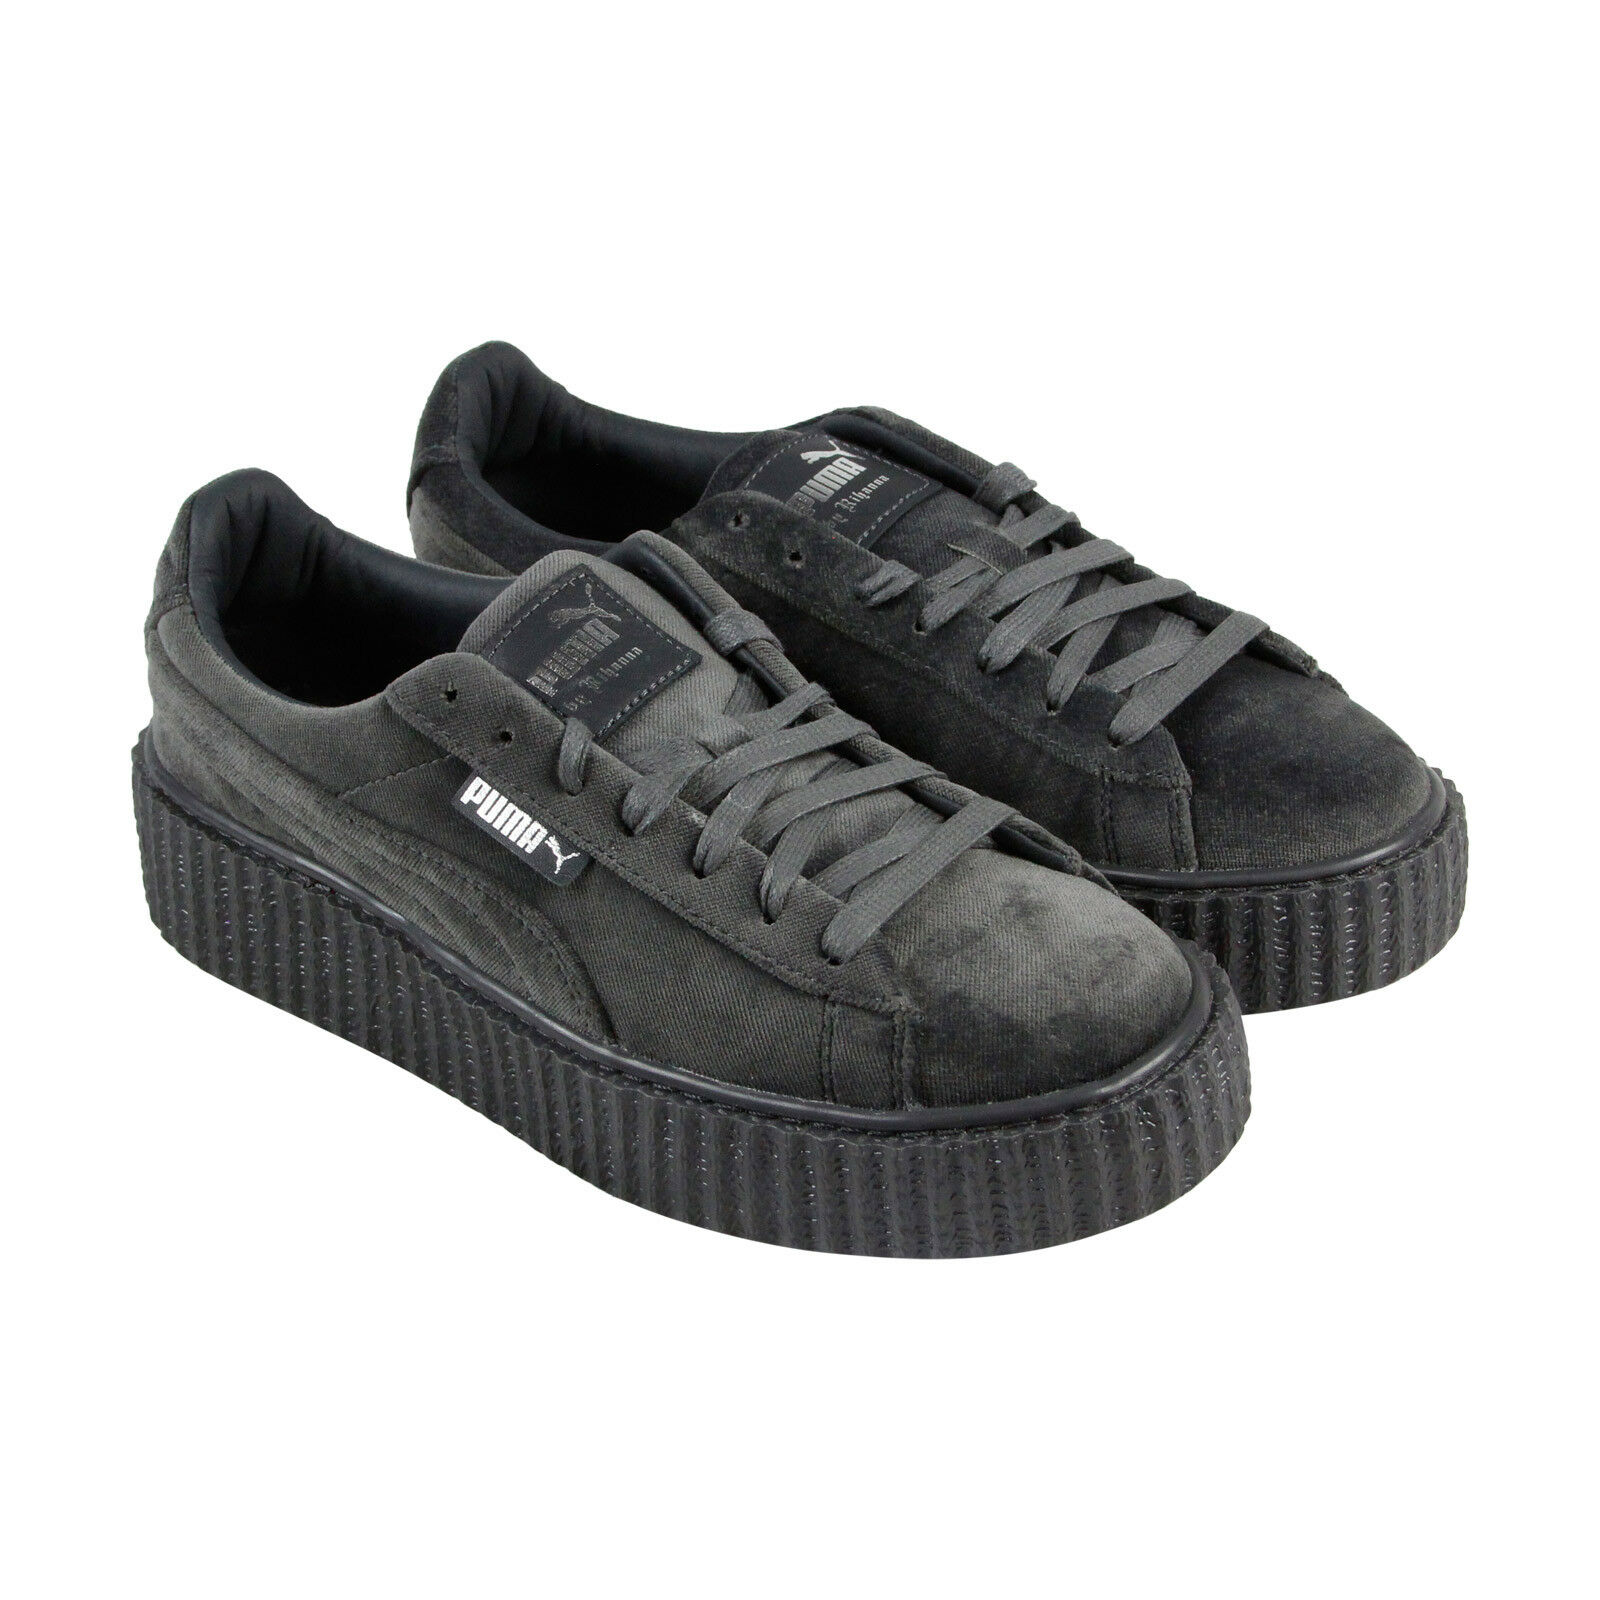 best deals on 8de98 218e9 Puma Fenty By Rihanna Creeper Velvet Womens Gray Casual Lace Up Sneakers  Shoes